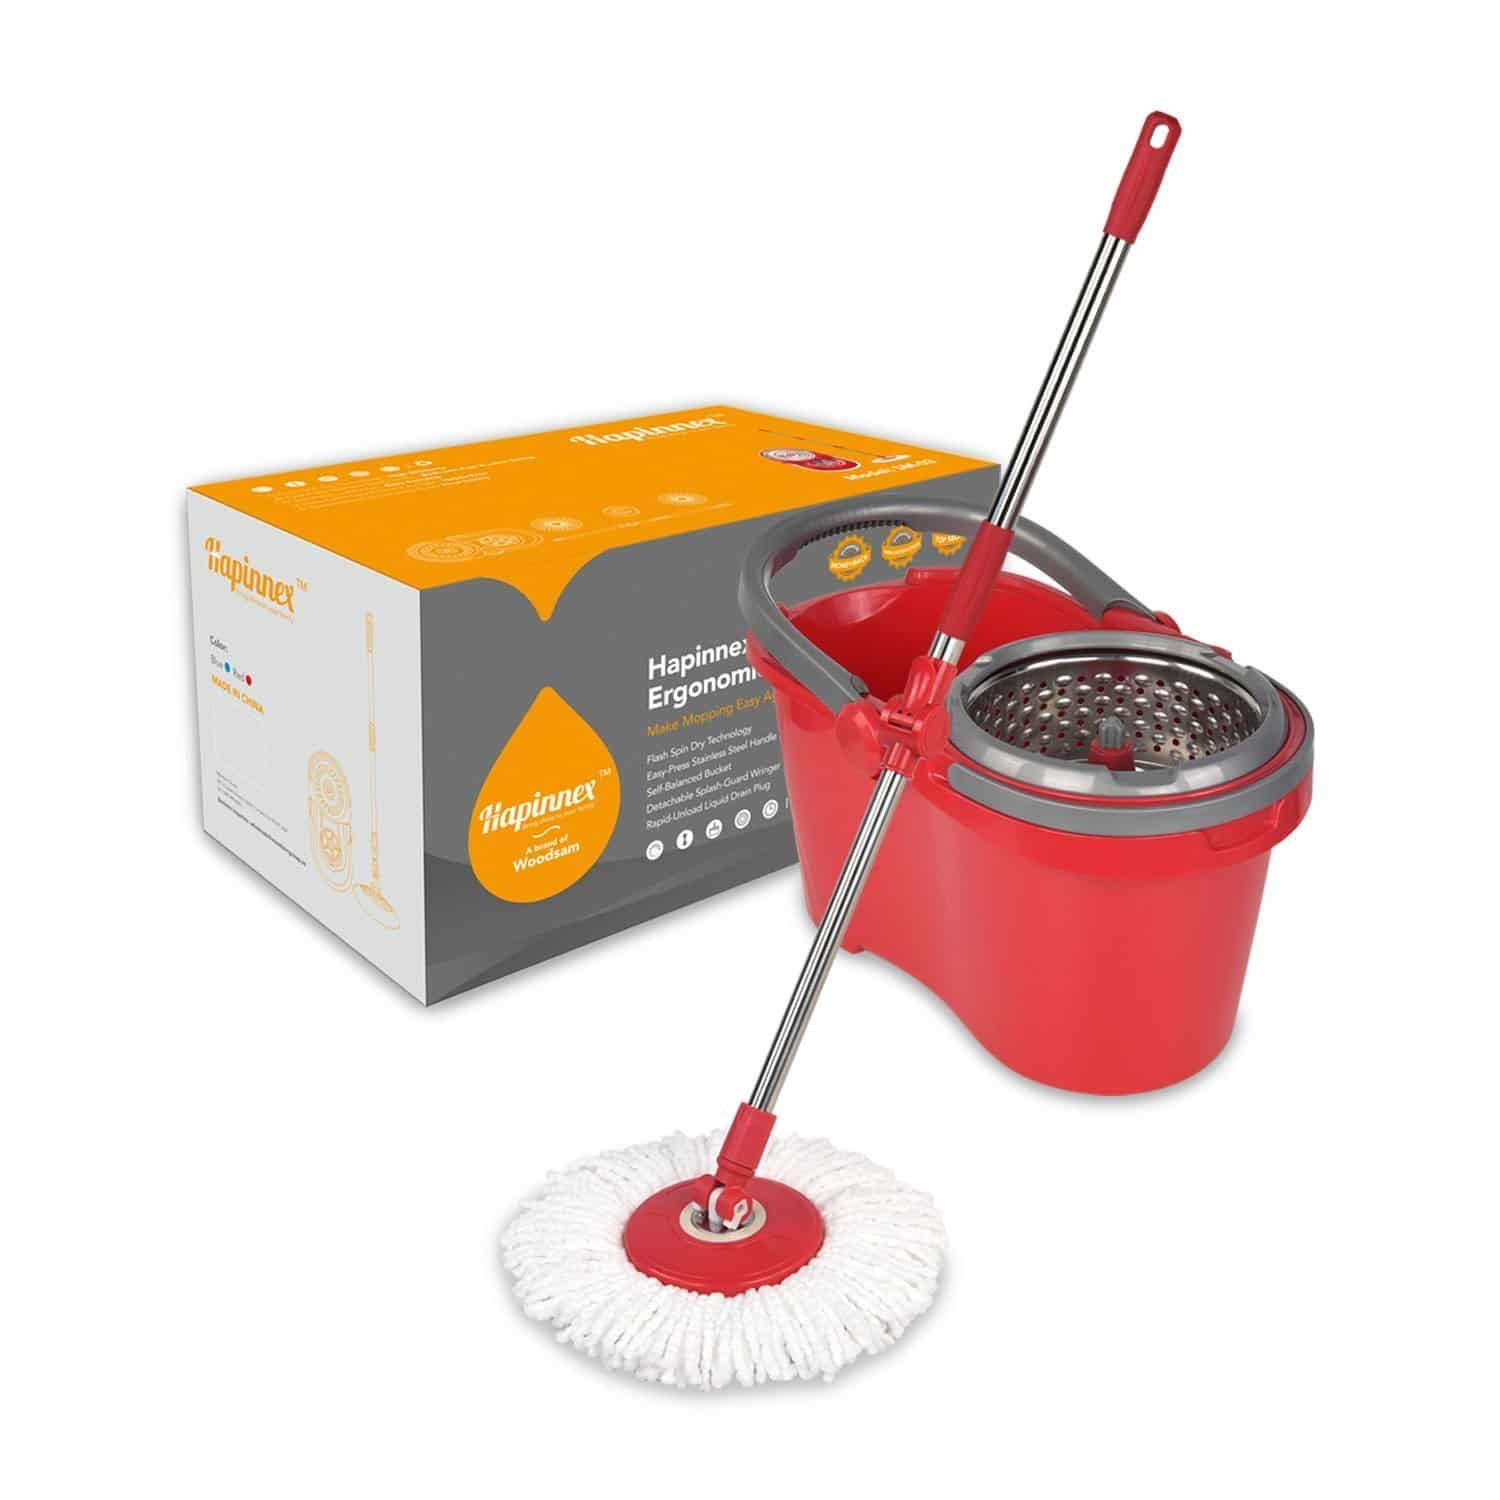 Top 10 Best Spin Mops In 2020 Topreviewproducts Spin Mops Microfiber Mops Spin Mop